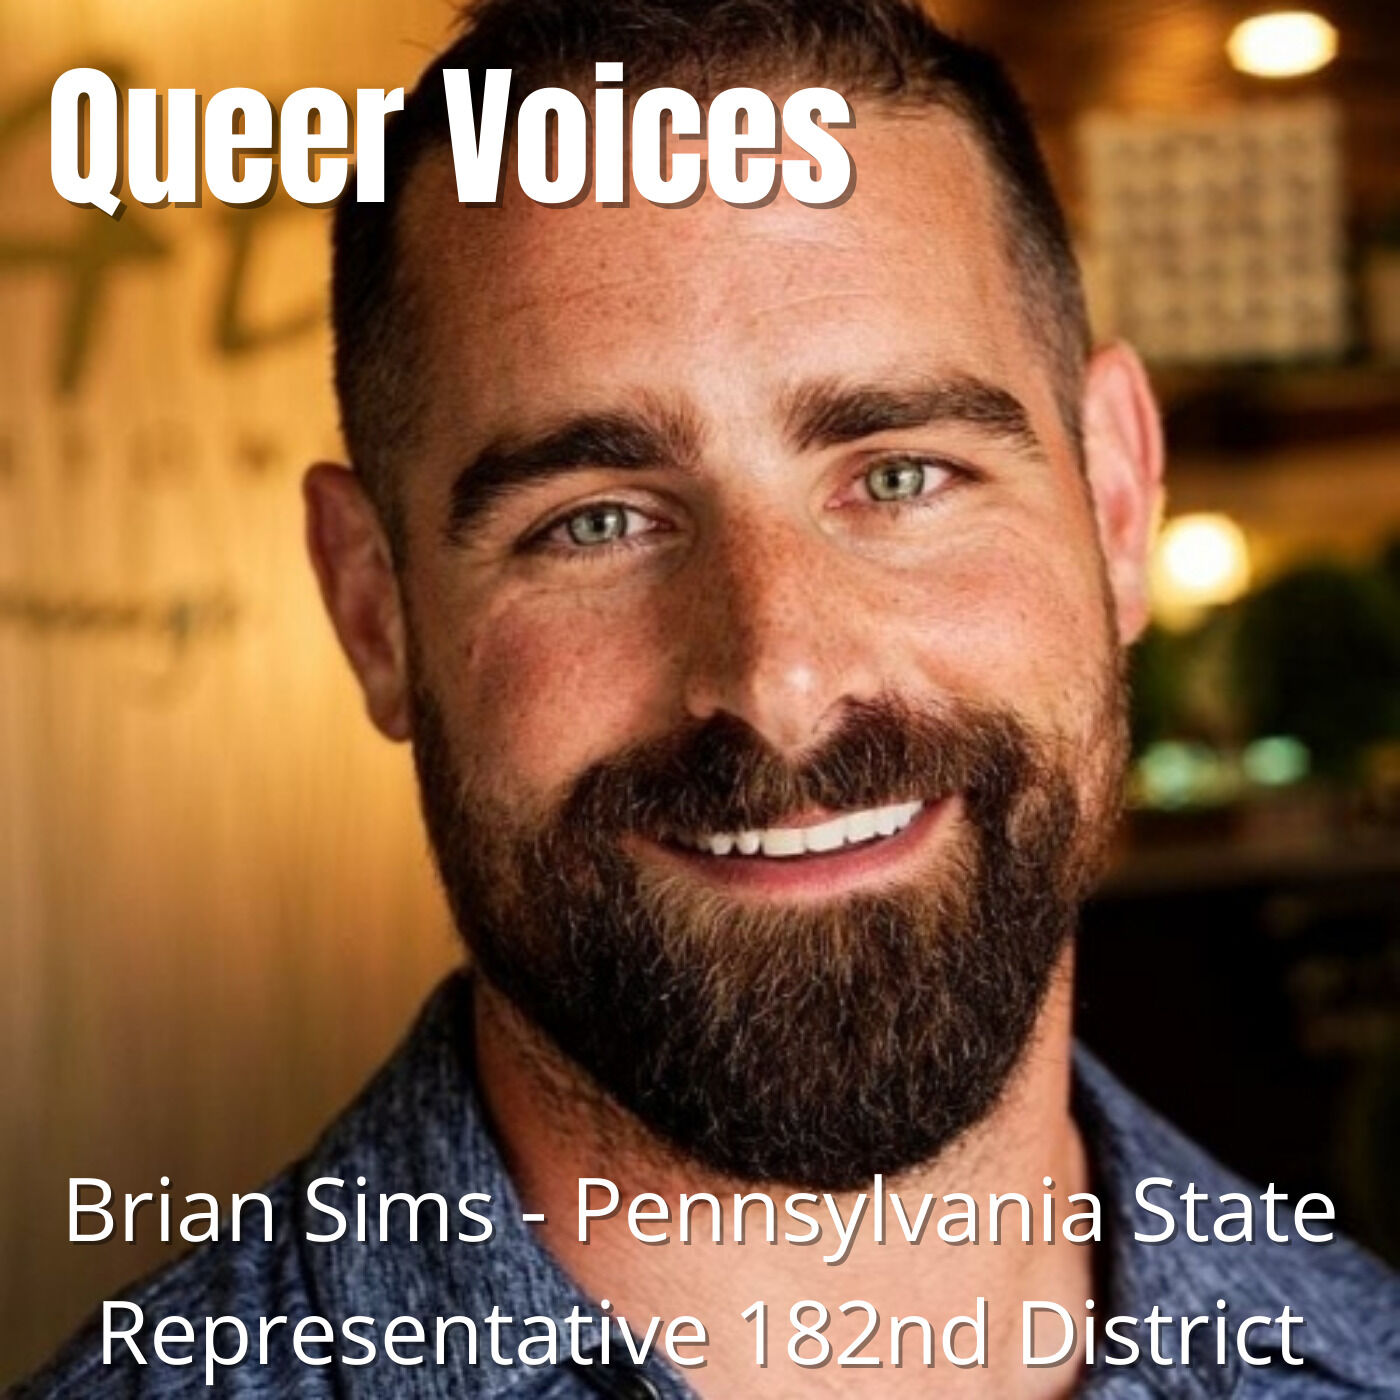 January 25th 2021 Queer Voices